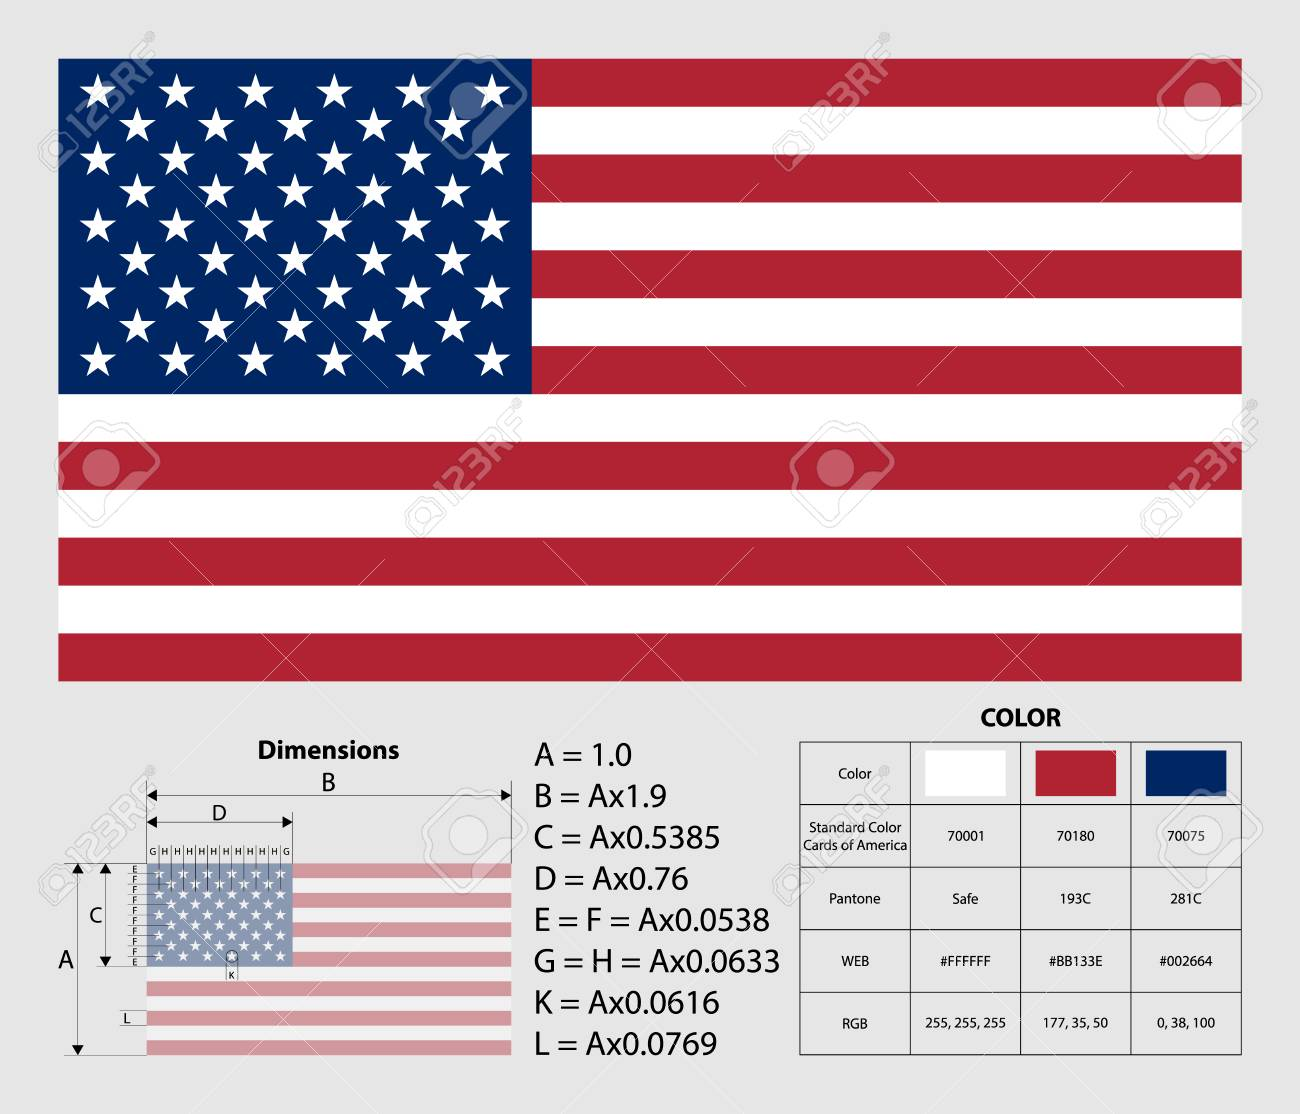 a105041528-american-flag-with-exact-dimensions-usa-flag-official-colors-and-proportion-correctly-national-unite.jpg